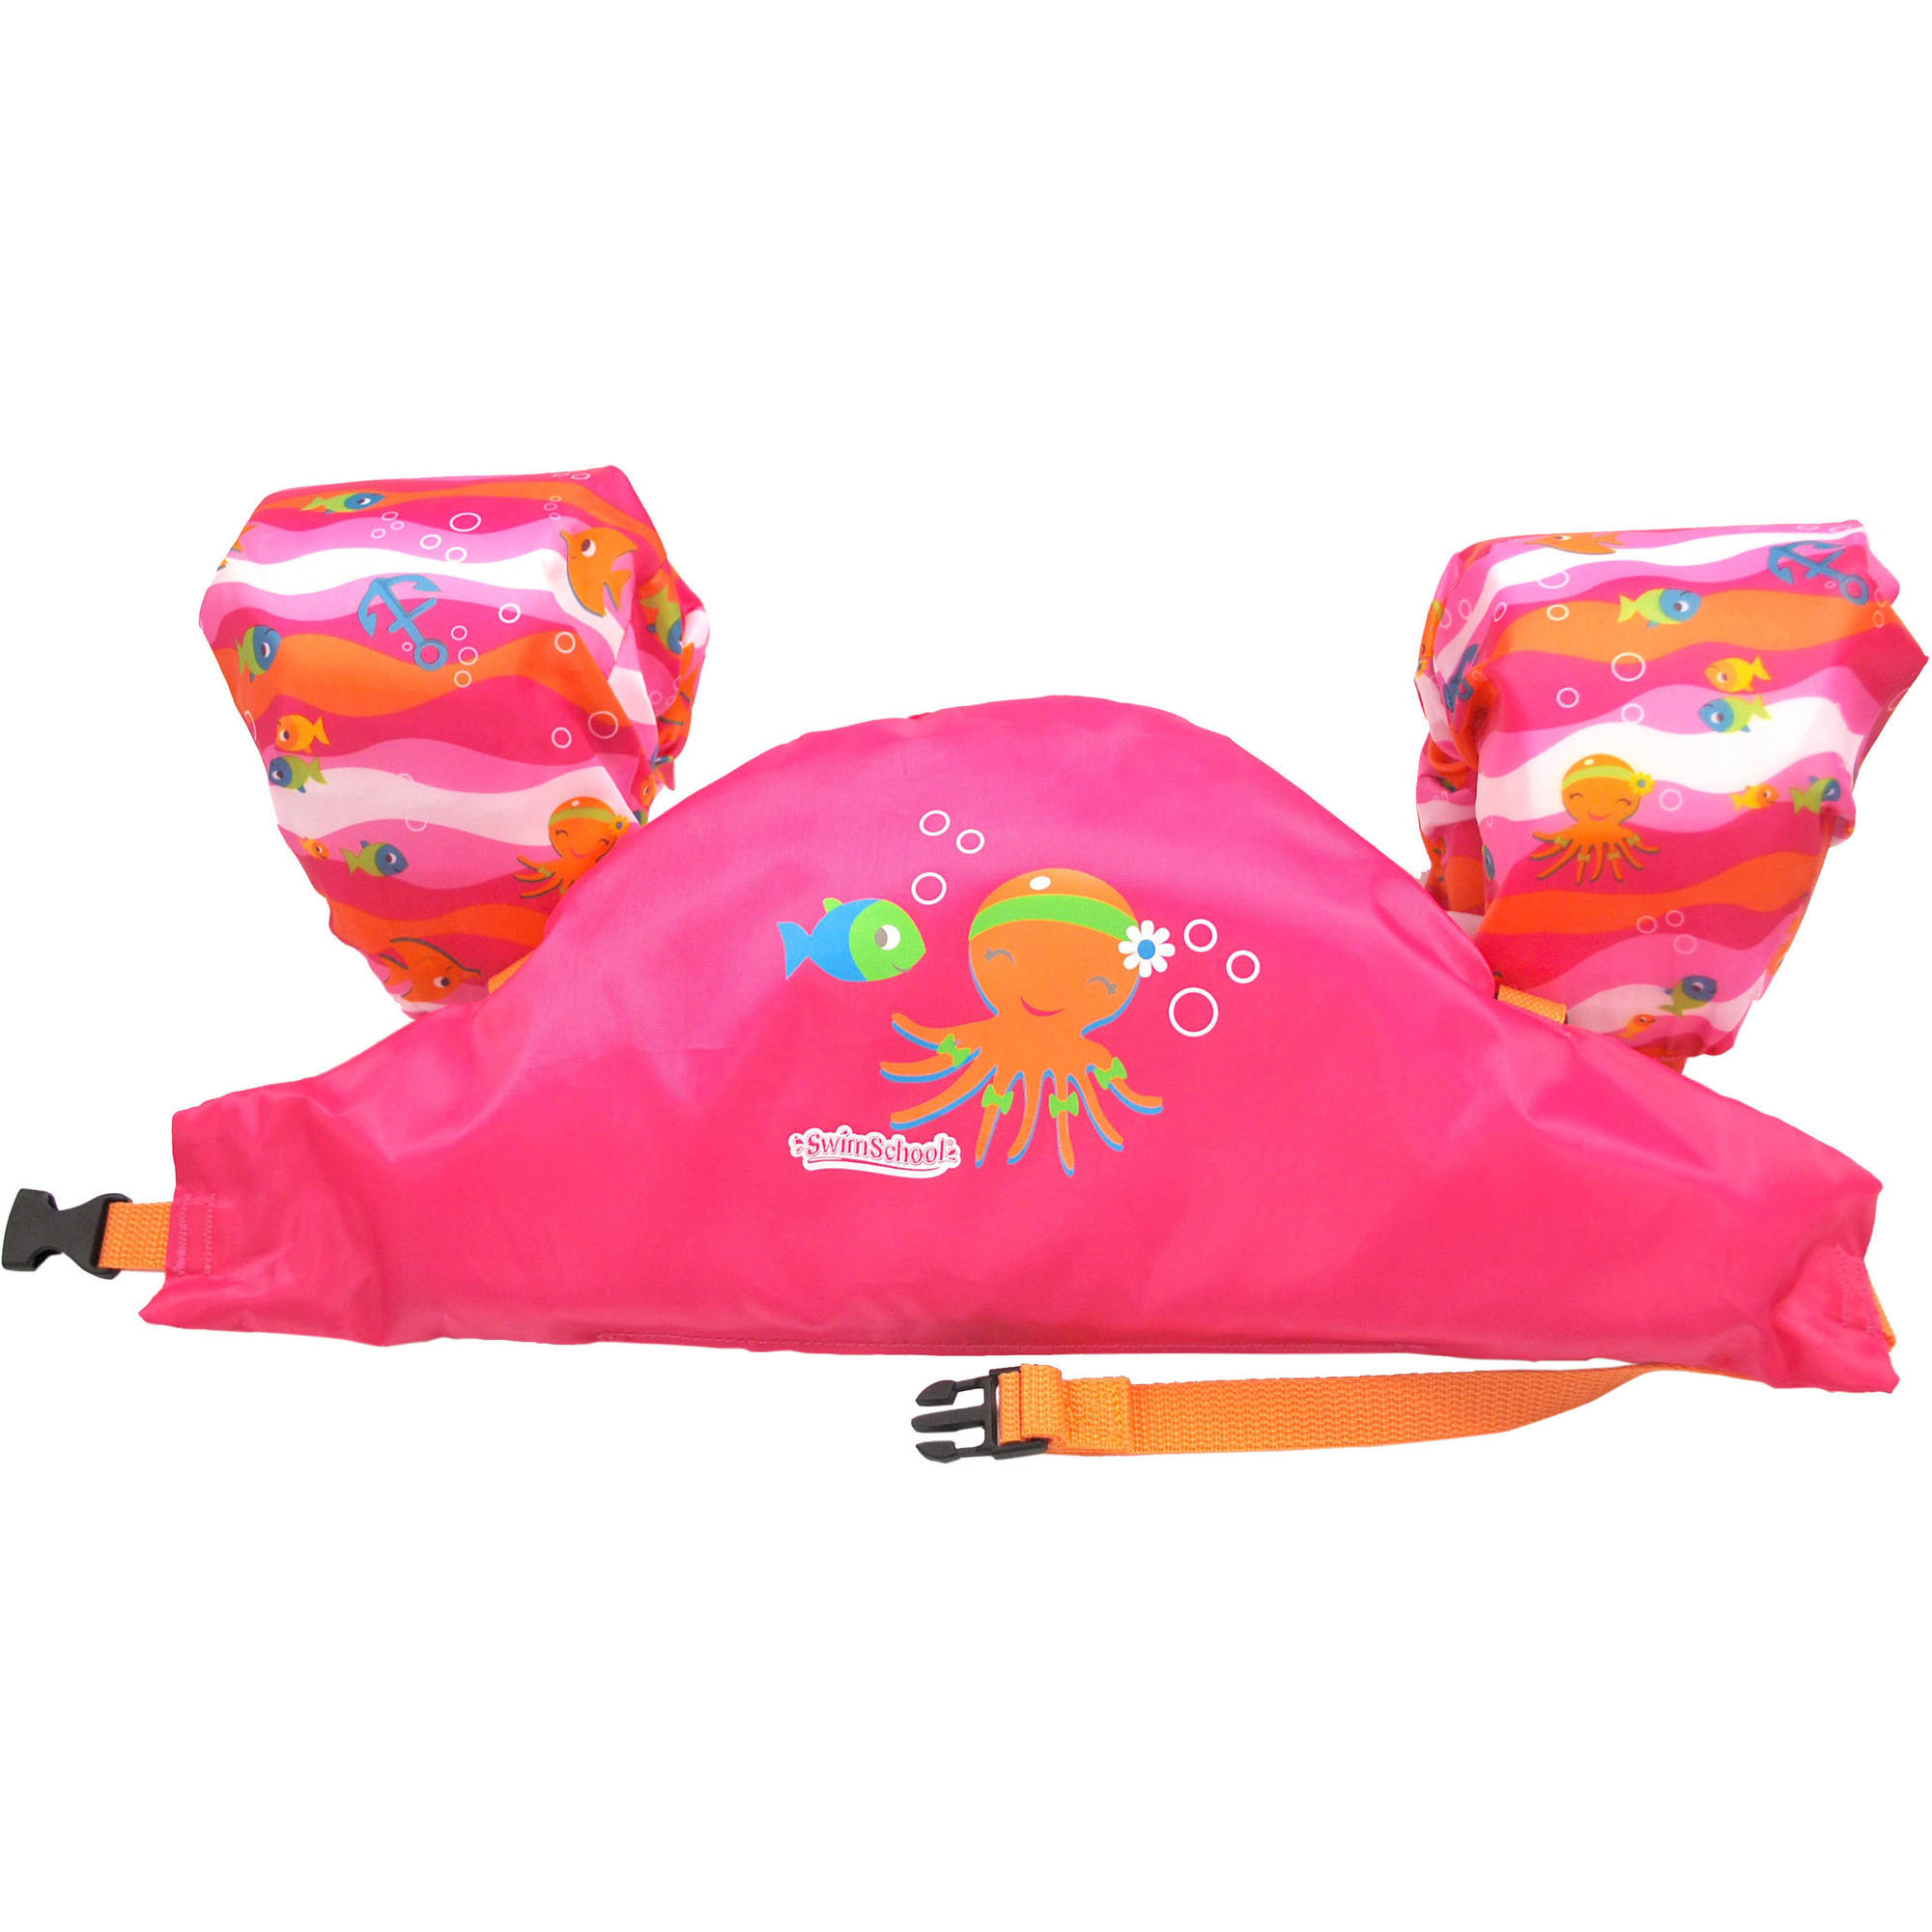 SwimSchool Aqua Tot Swimmer, Girl's